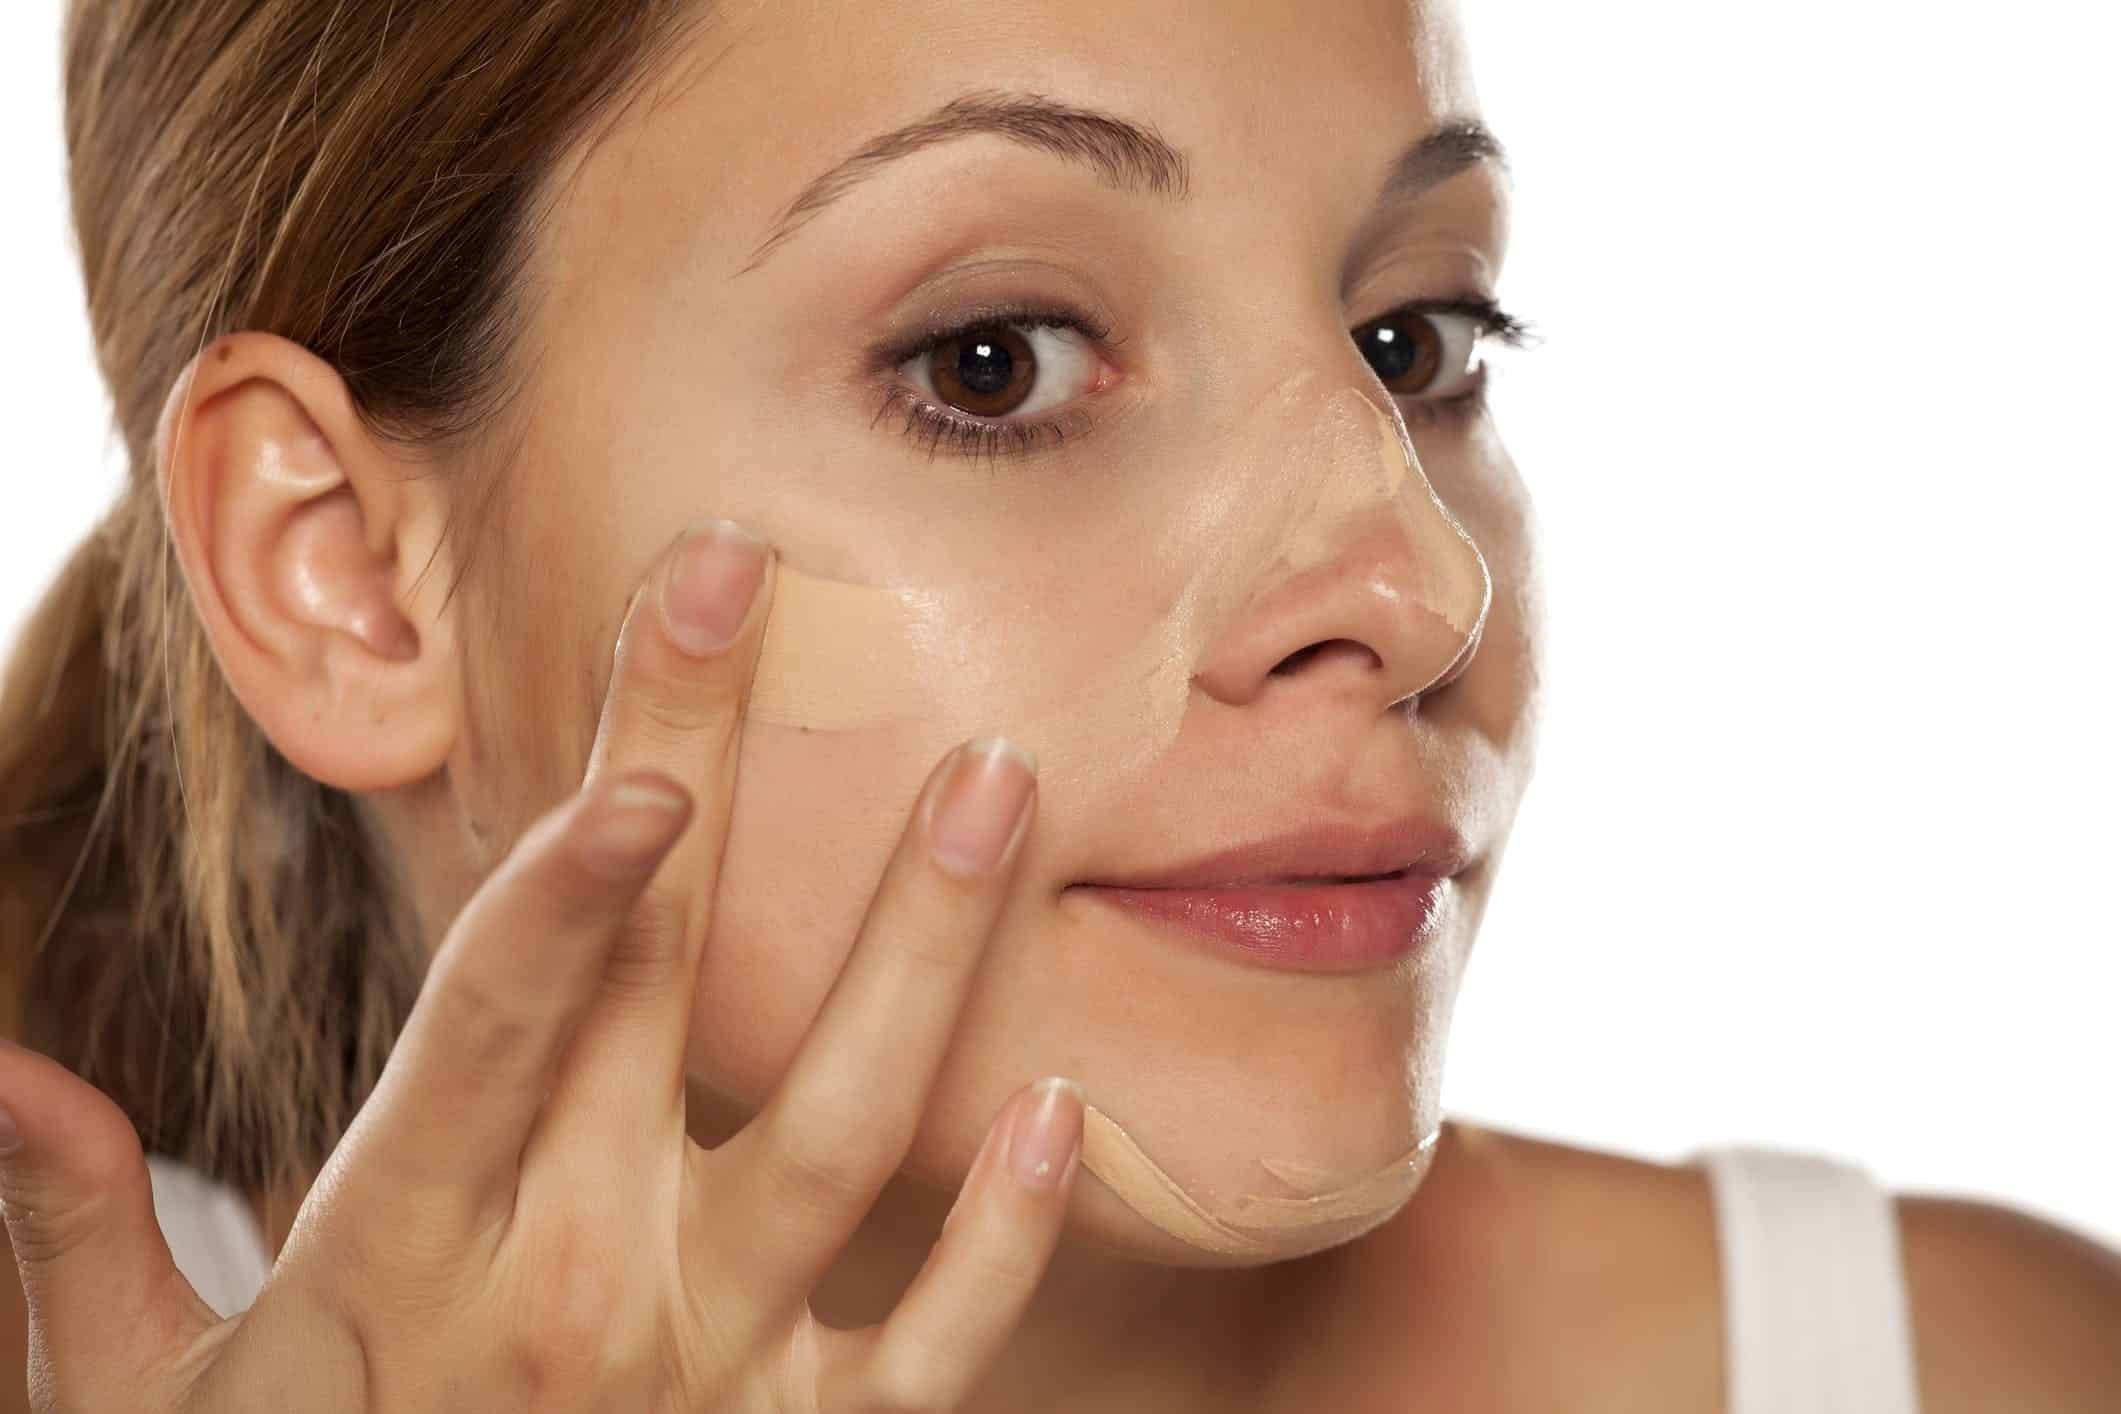 What Is A Silicone Based Foundation And How To Detect It